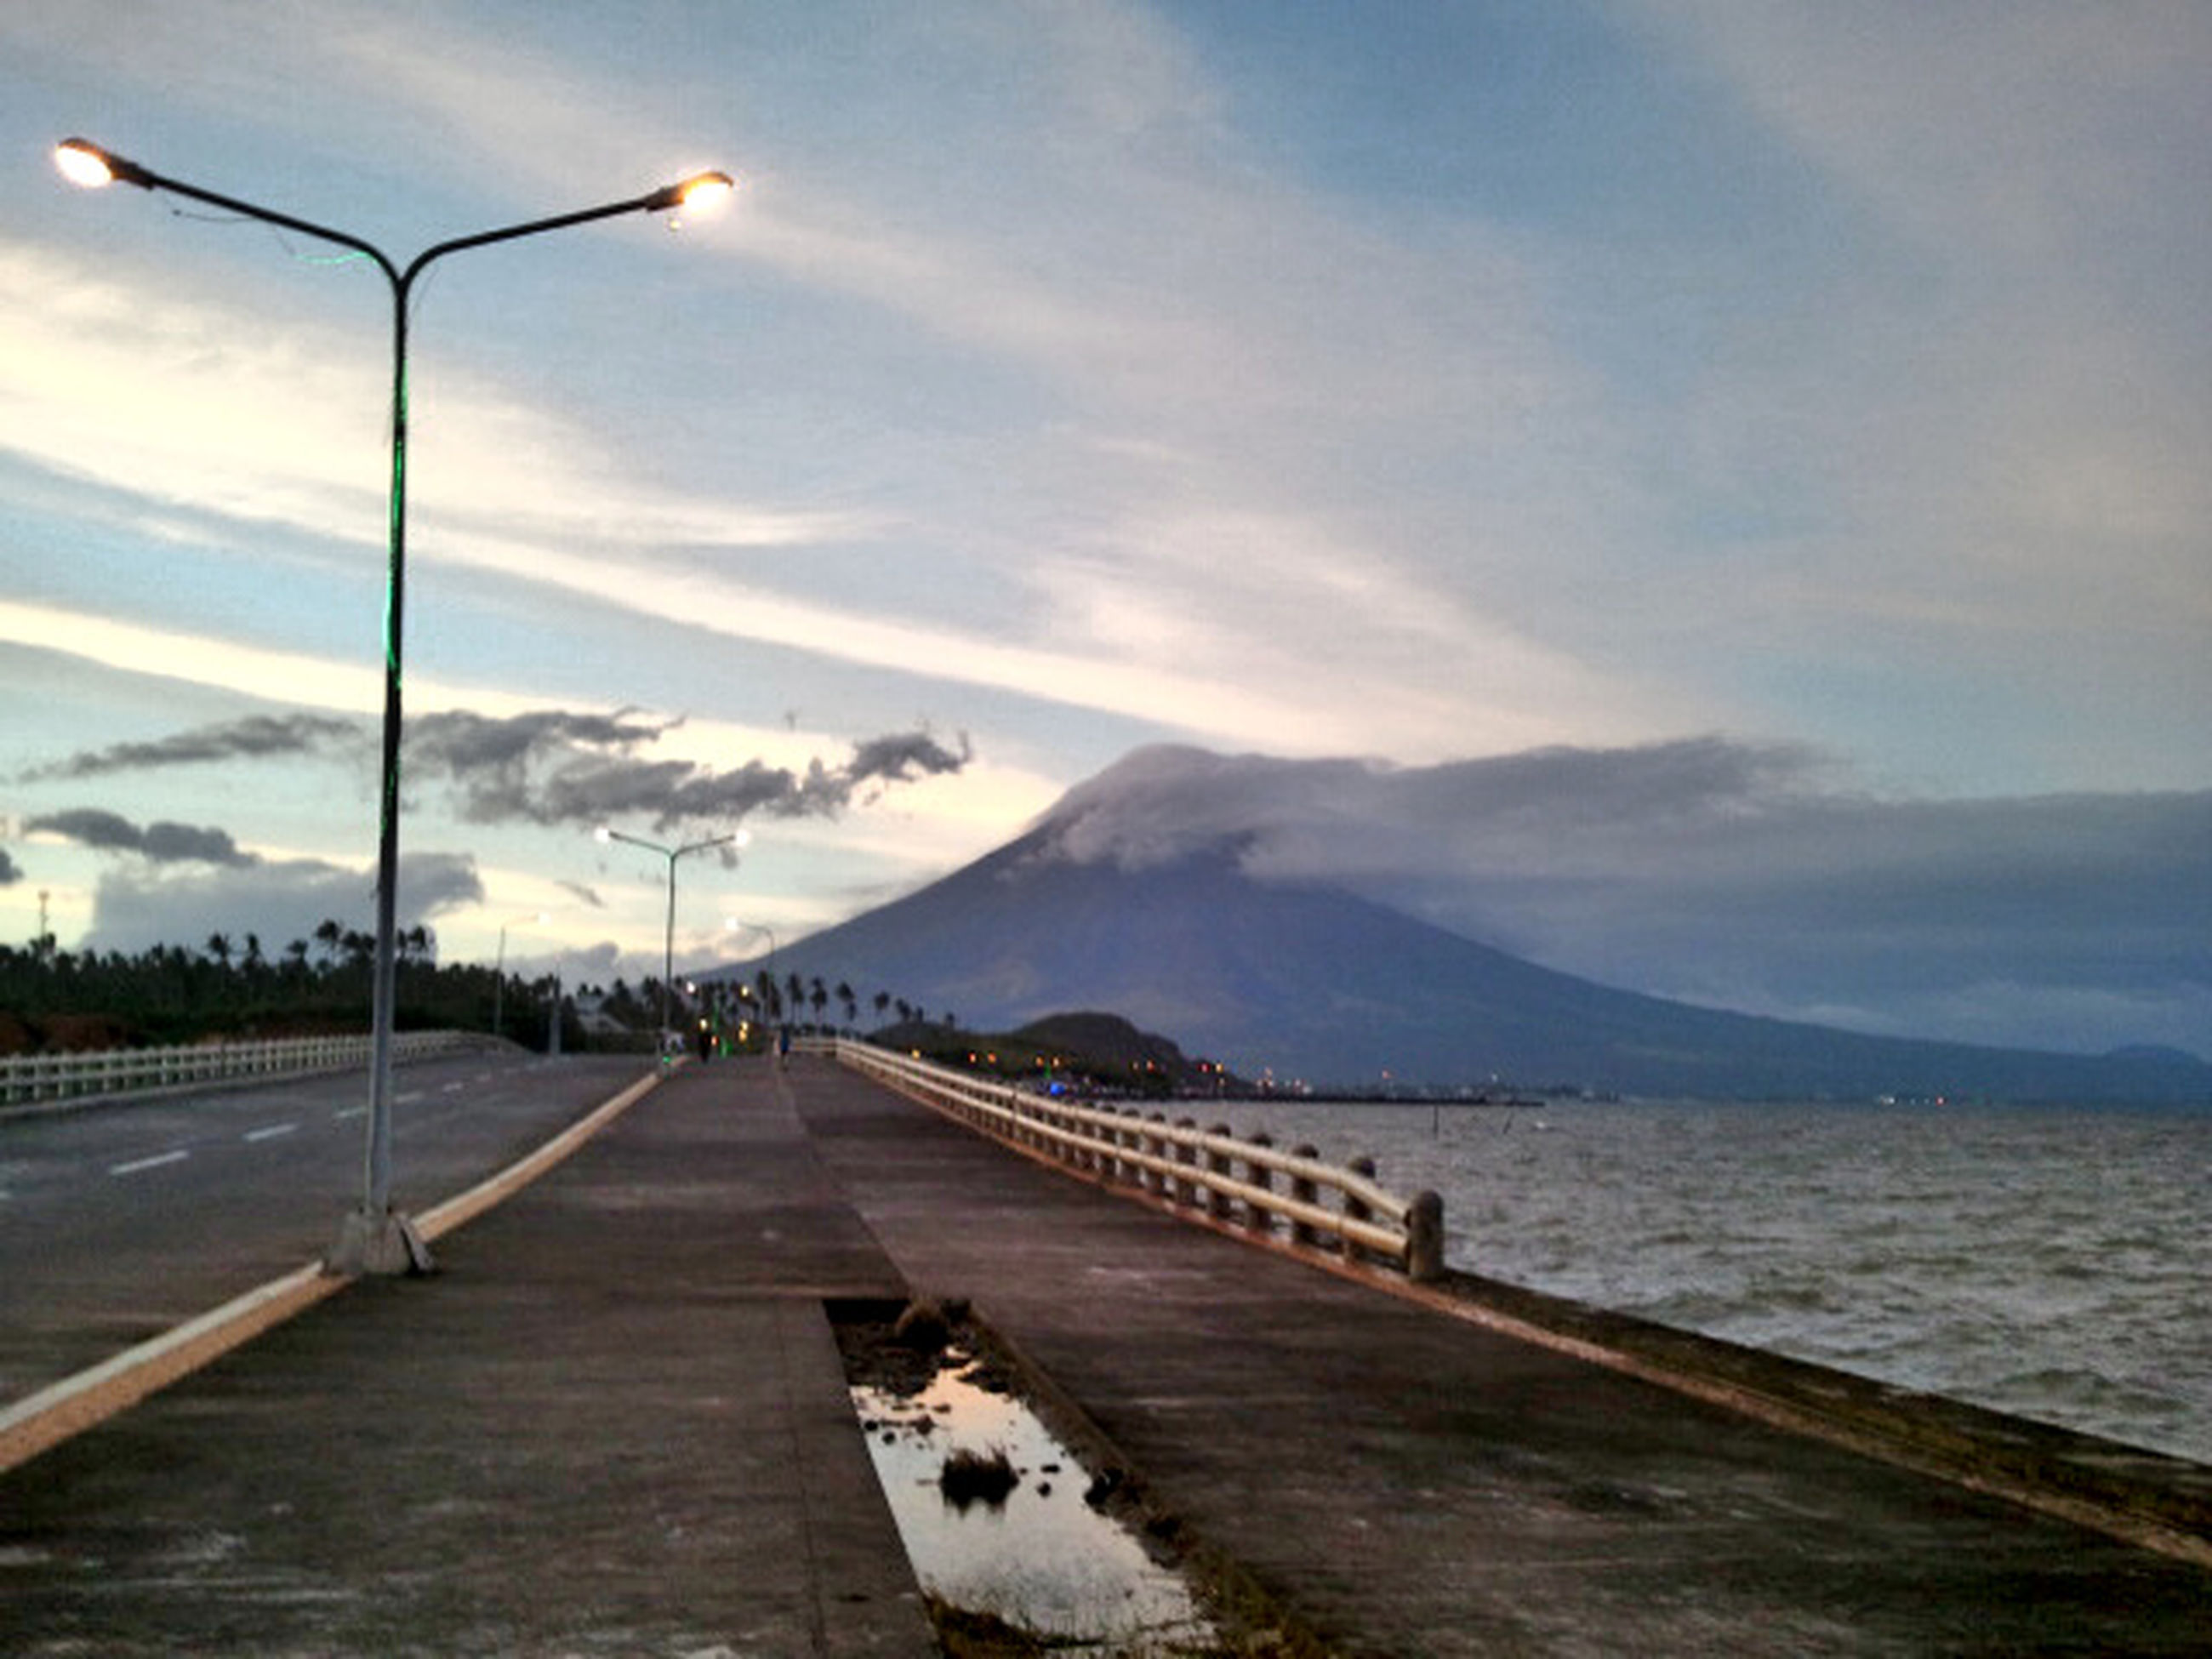 sky, the way forward, cloud - sky, water, sea, cloud, mountain, tranquil scene, transportation, cloudy, diminishing perspective, tranquility, scenics, beauty in nature, vanishing point, nature, pier, outdoors, street light, idyllic